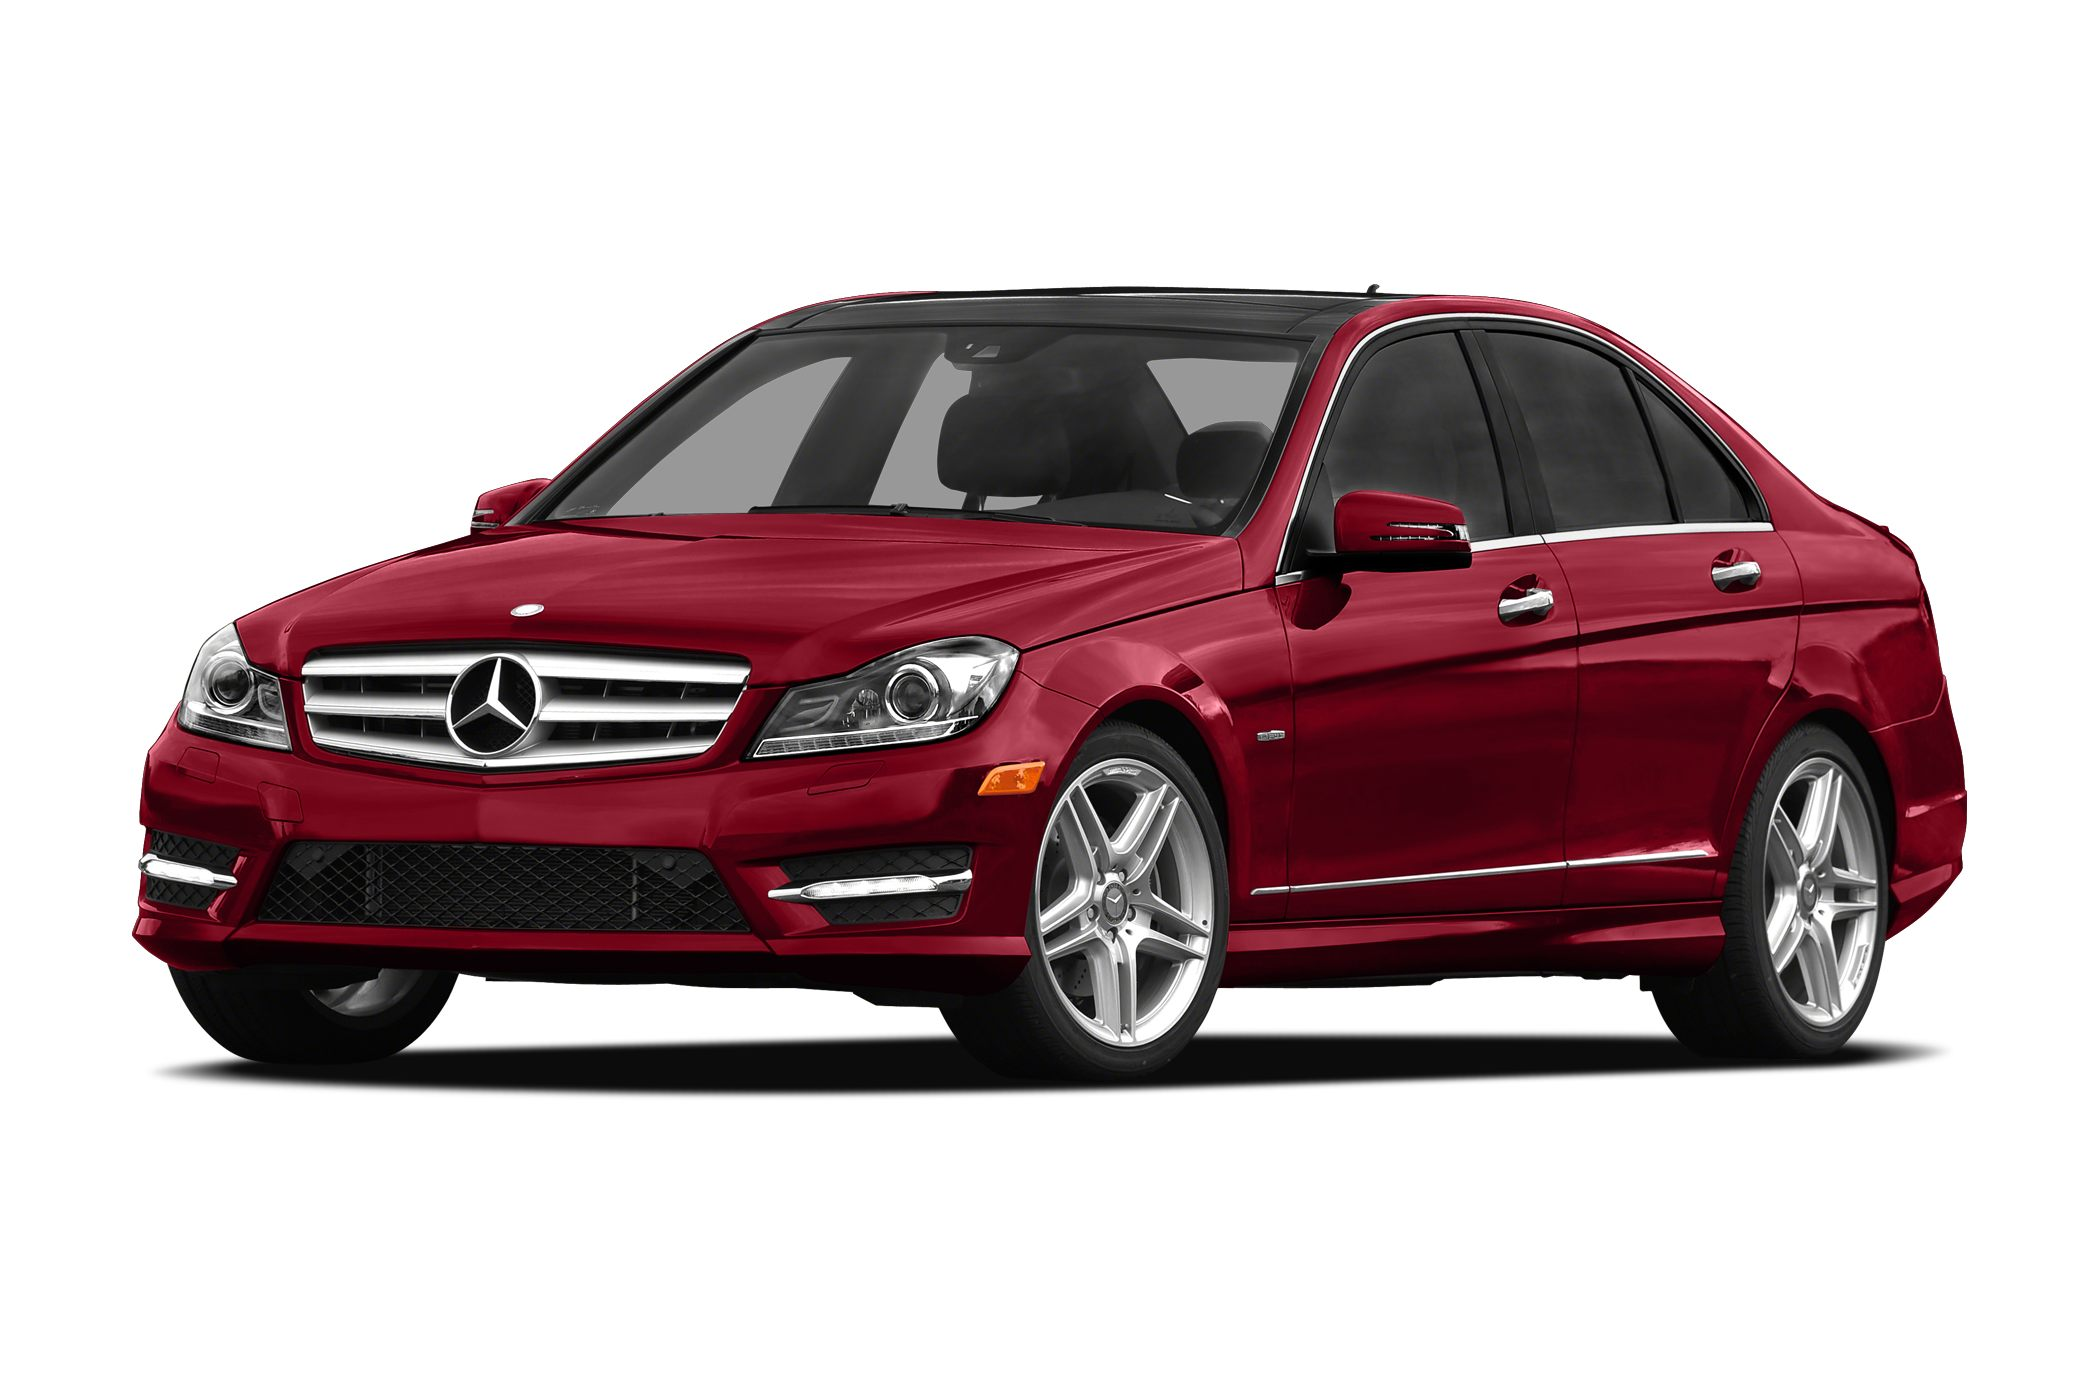 2012 Mercedes Benz C Class Sport C 250 4dr Sedan Pictures